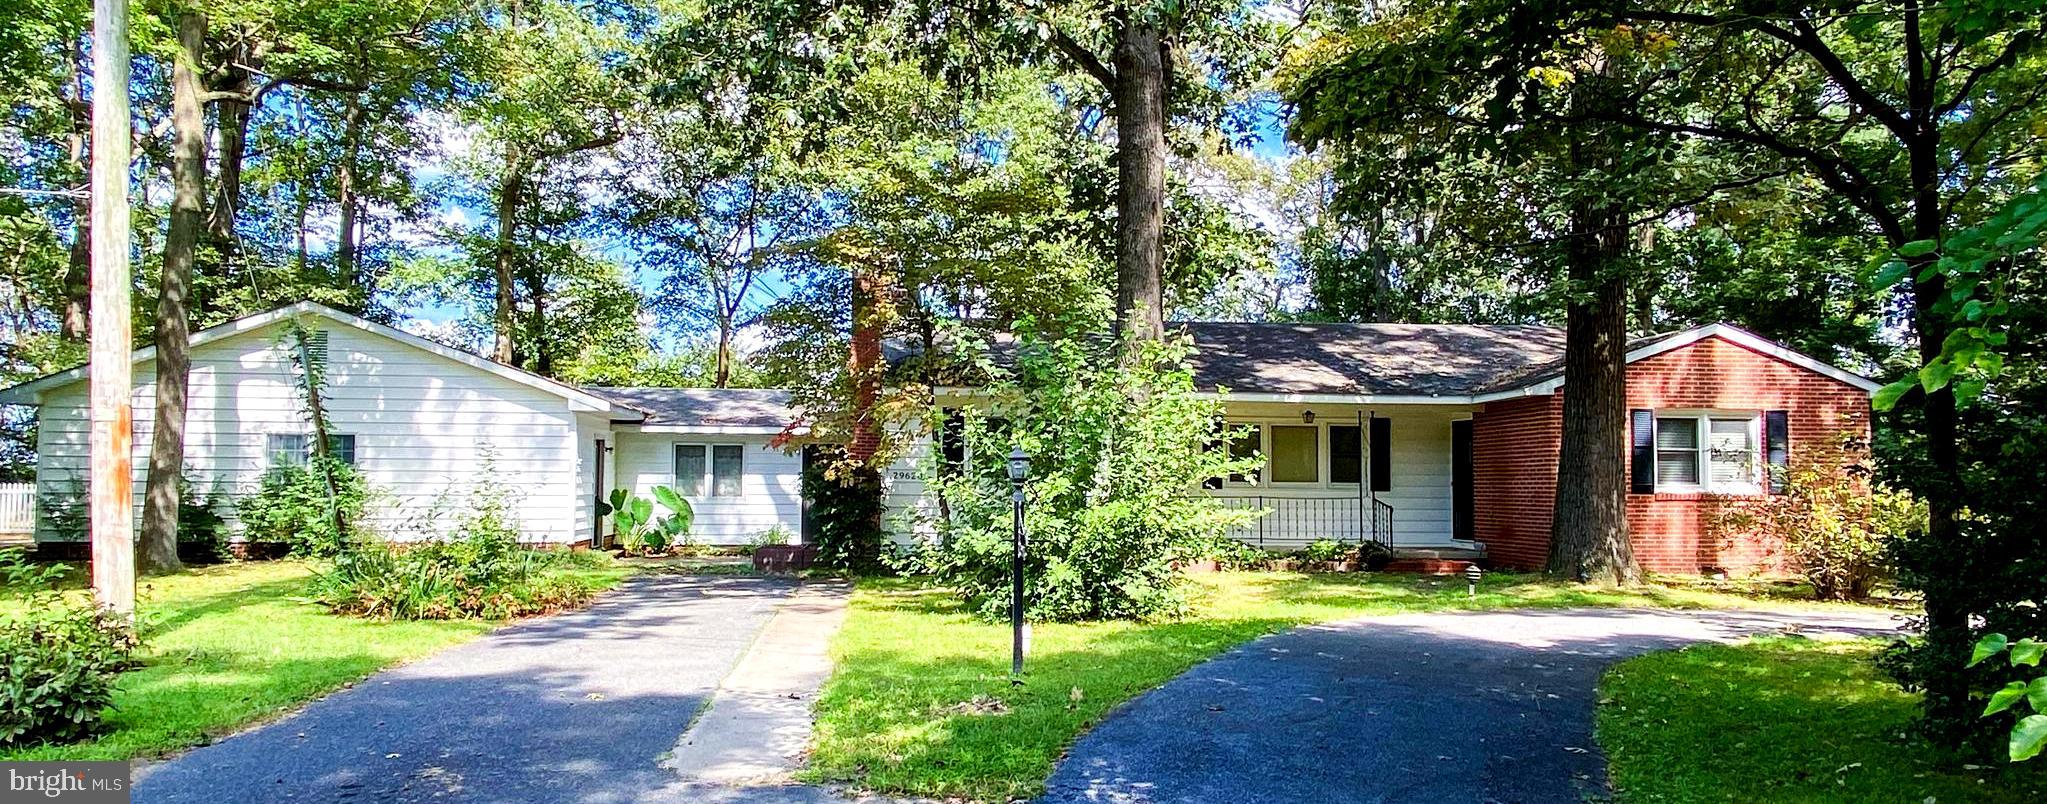 Spacious 3 BR 1.5 BA ranch home on a private double lot just outside of Delmar. Hardwood flooring th